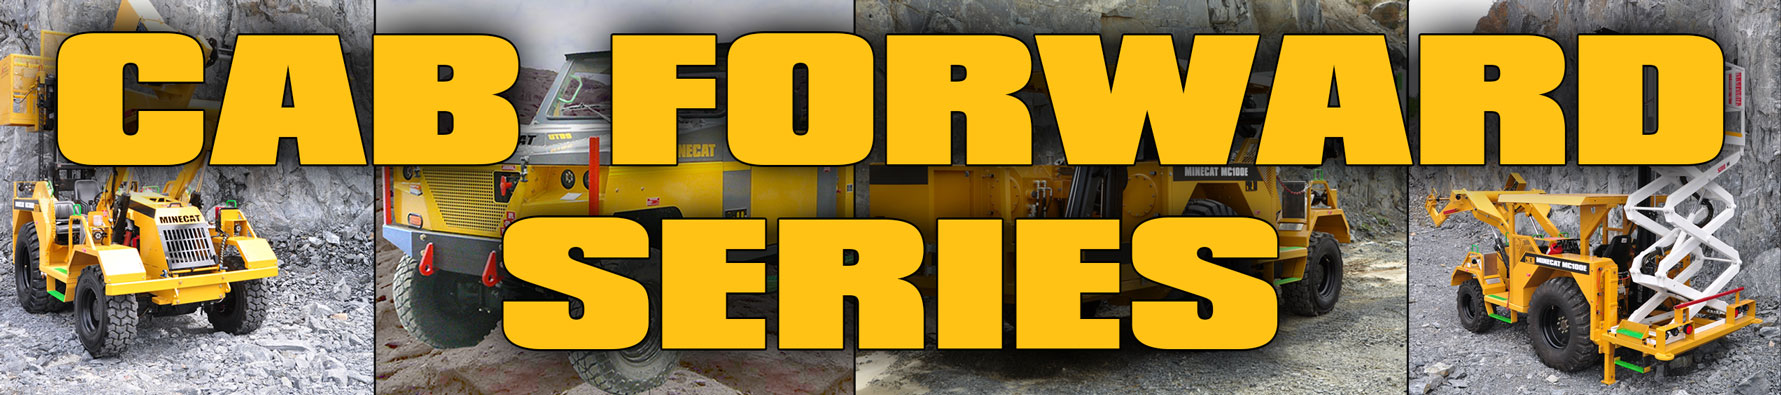 MINECAT Cab Forward Series Product Banner